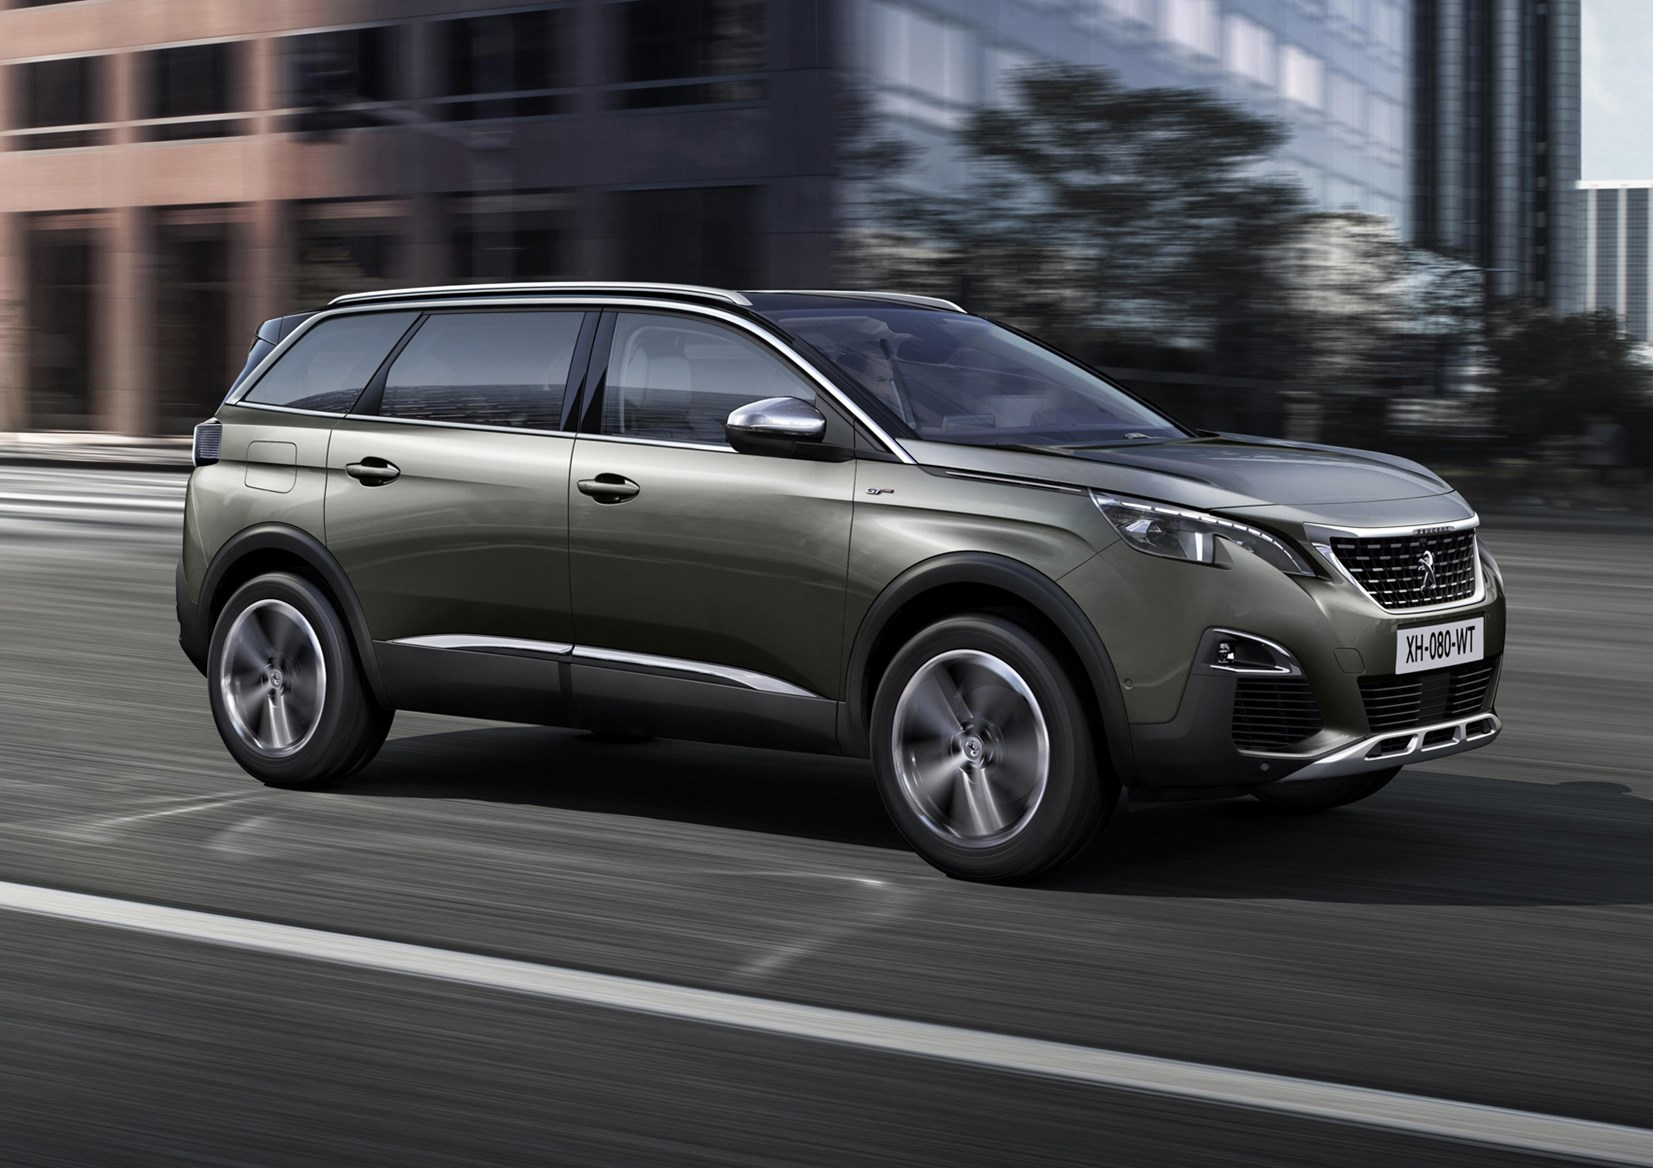 peugeot 5008 suv review running costs parkers. Black Bedroom Furniture Sets. Home Design Ideas